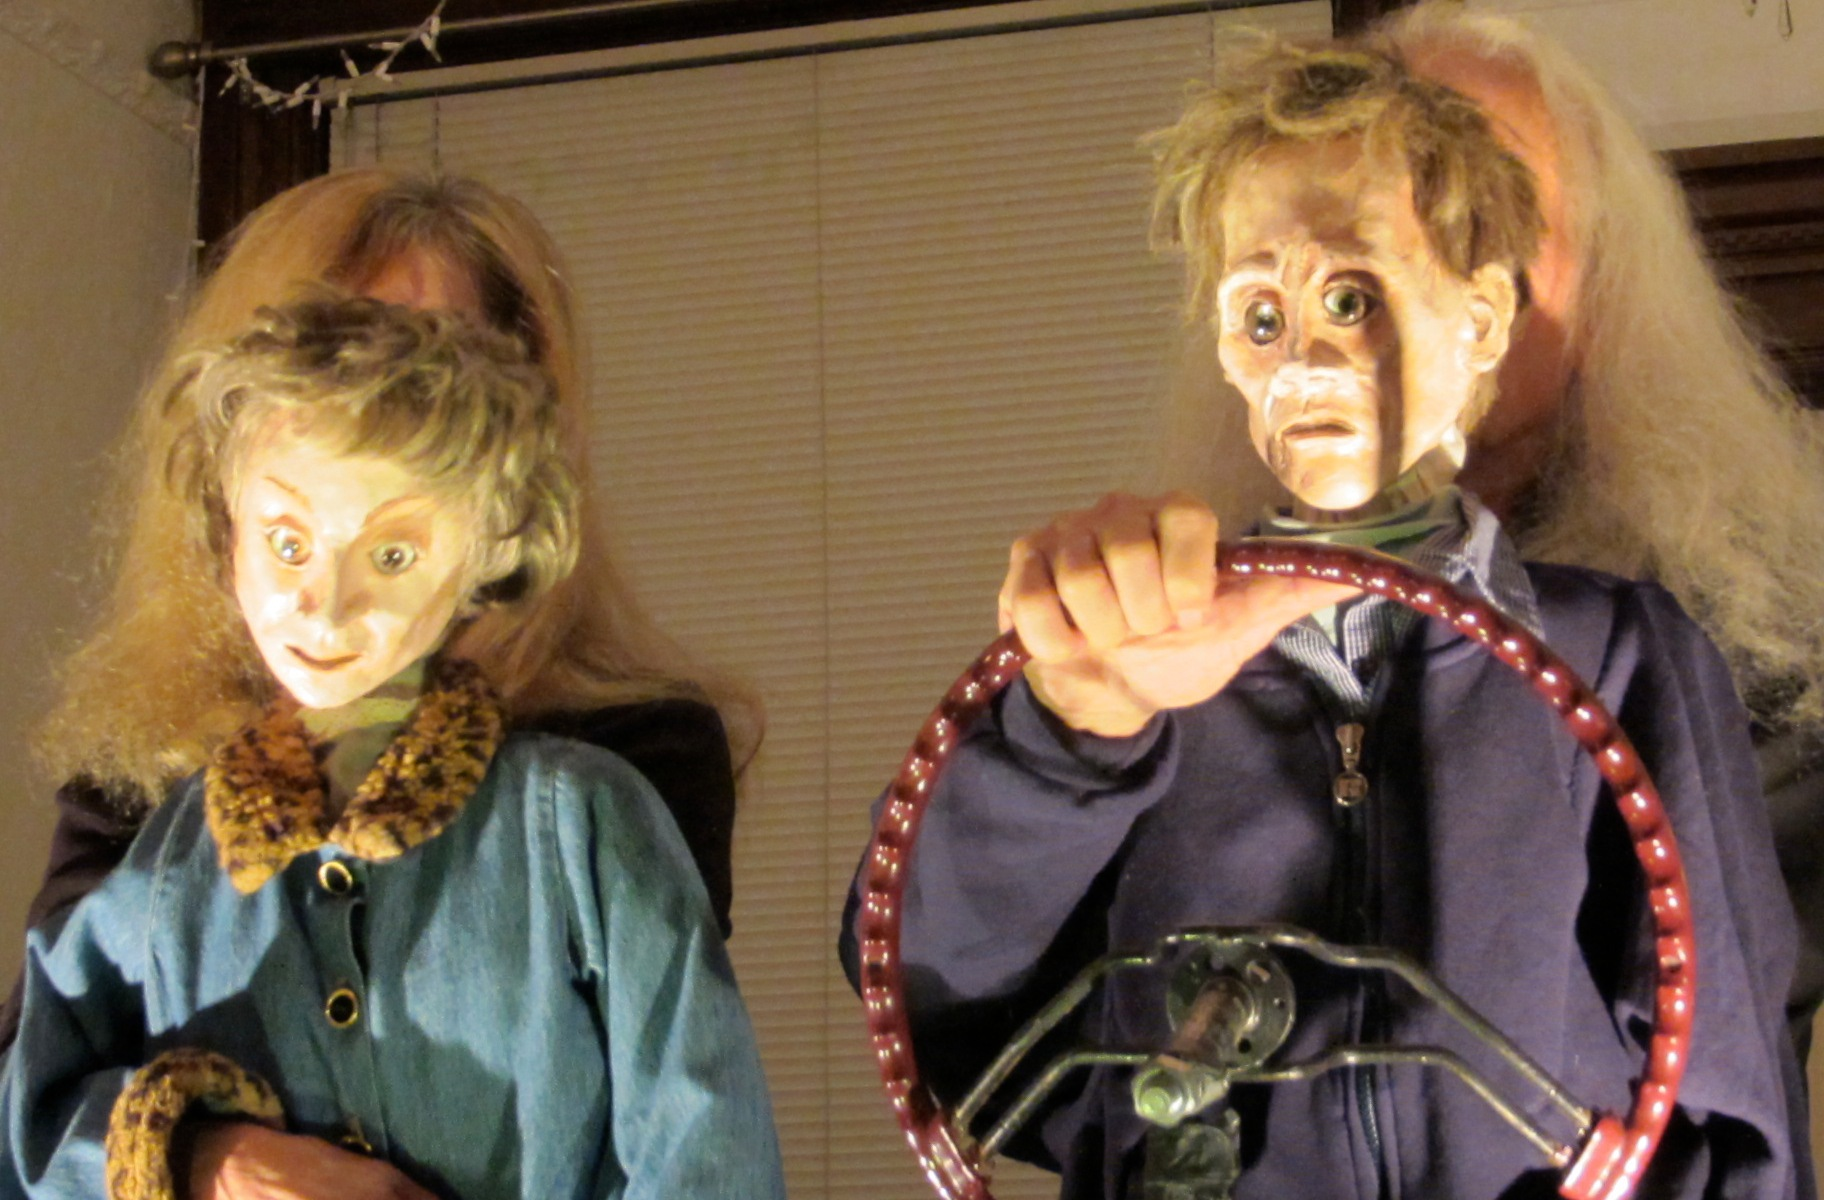 Two elderly performers wearing human-face masks pretend to drive a car in a private living room.